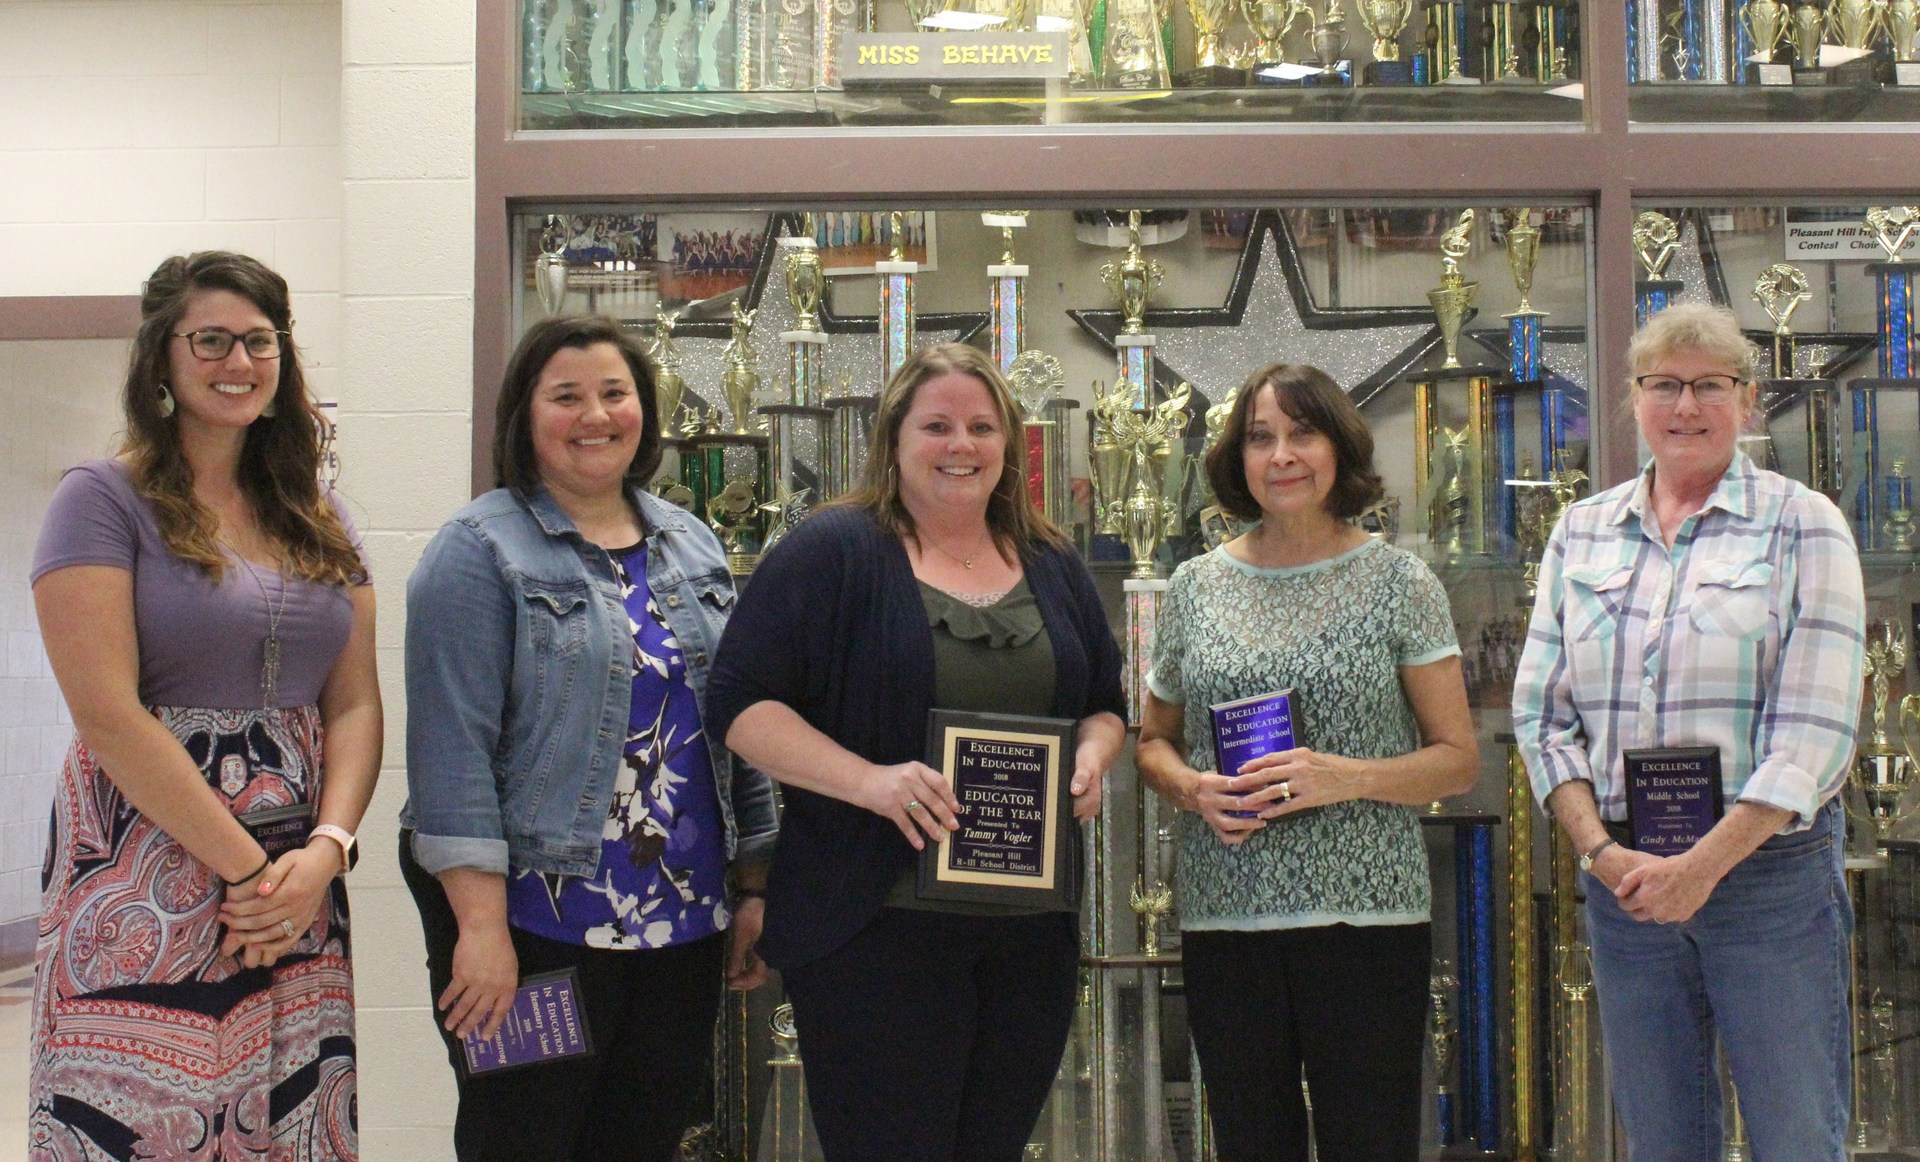 Excellence in Education Awards